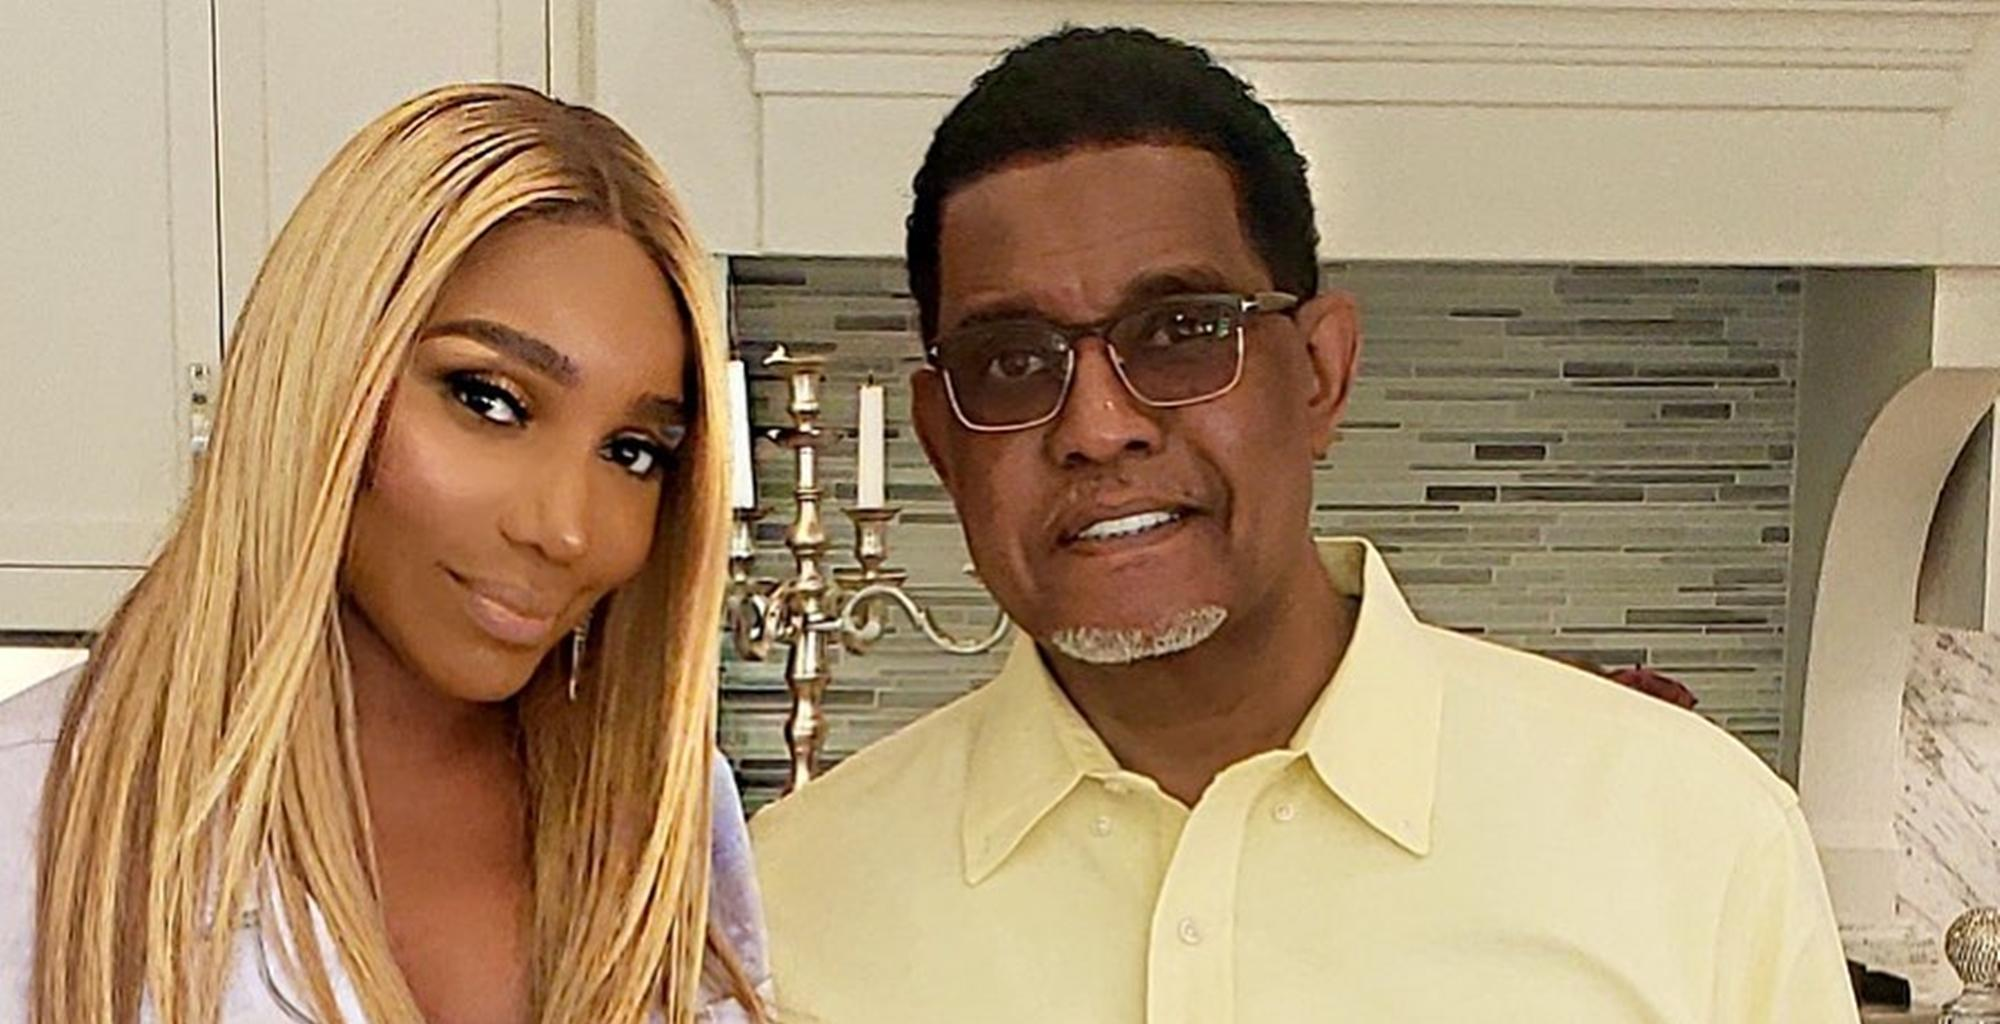 Annoyed Nene Leakes Enlists Kandi Burruss To Announce She Is Not The Big Bad Wolf Of 'The Real Housewives Of Atlanta' -- Is There Hope For Her To Make Peace With Porsha Williams And Kenya Moore?